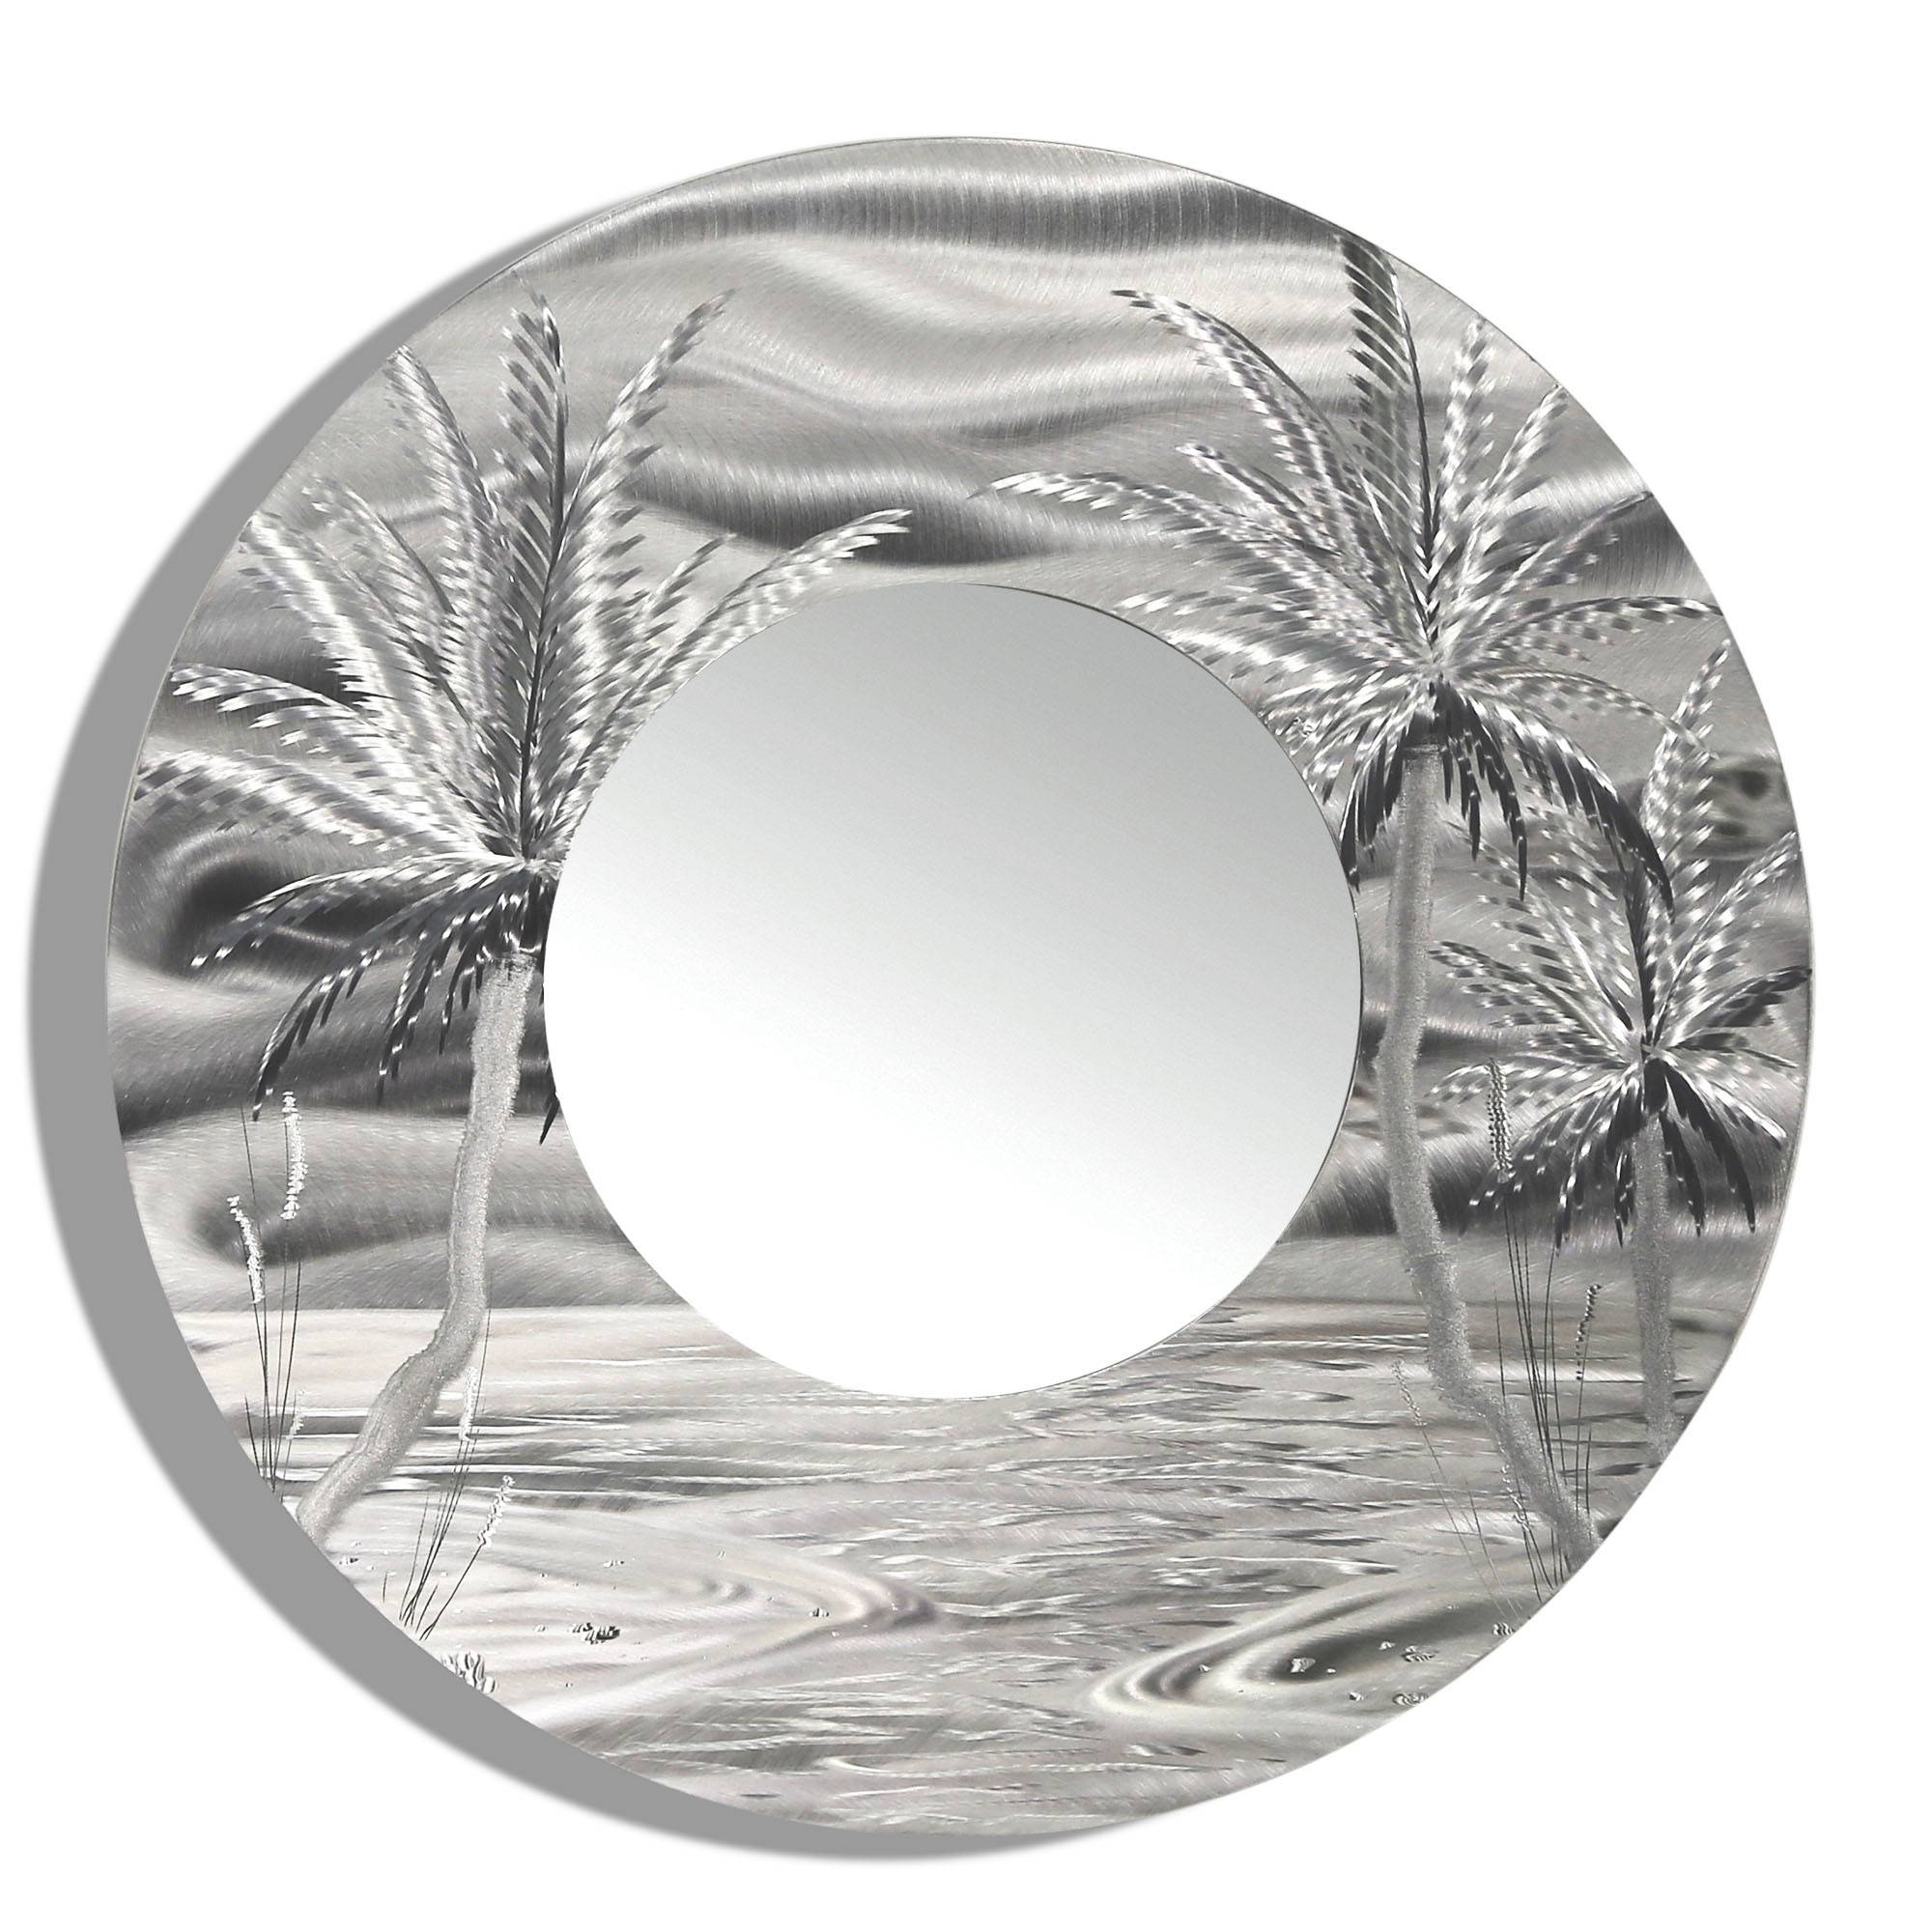 Mirror 106 – Modern Tropical Metal Wall Mirror – Silver Abstract Throughout Most Popular Palm Tree Metal Art (View 11 of 25)